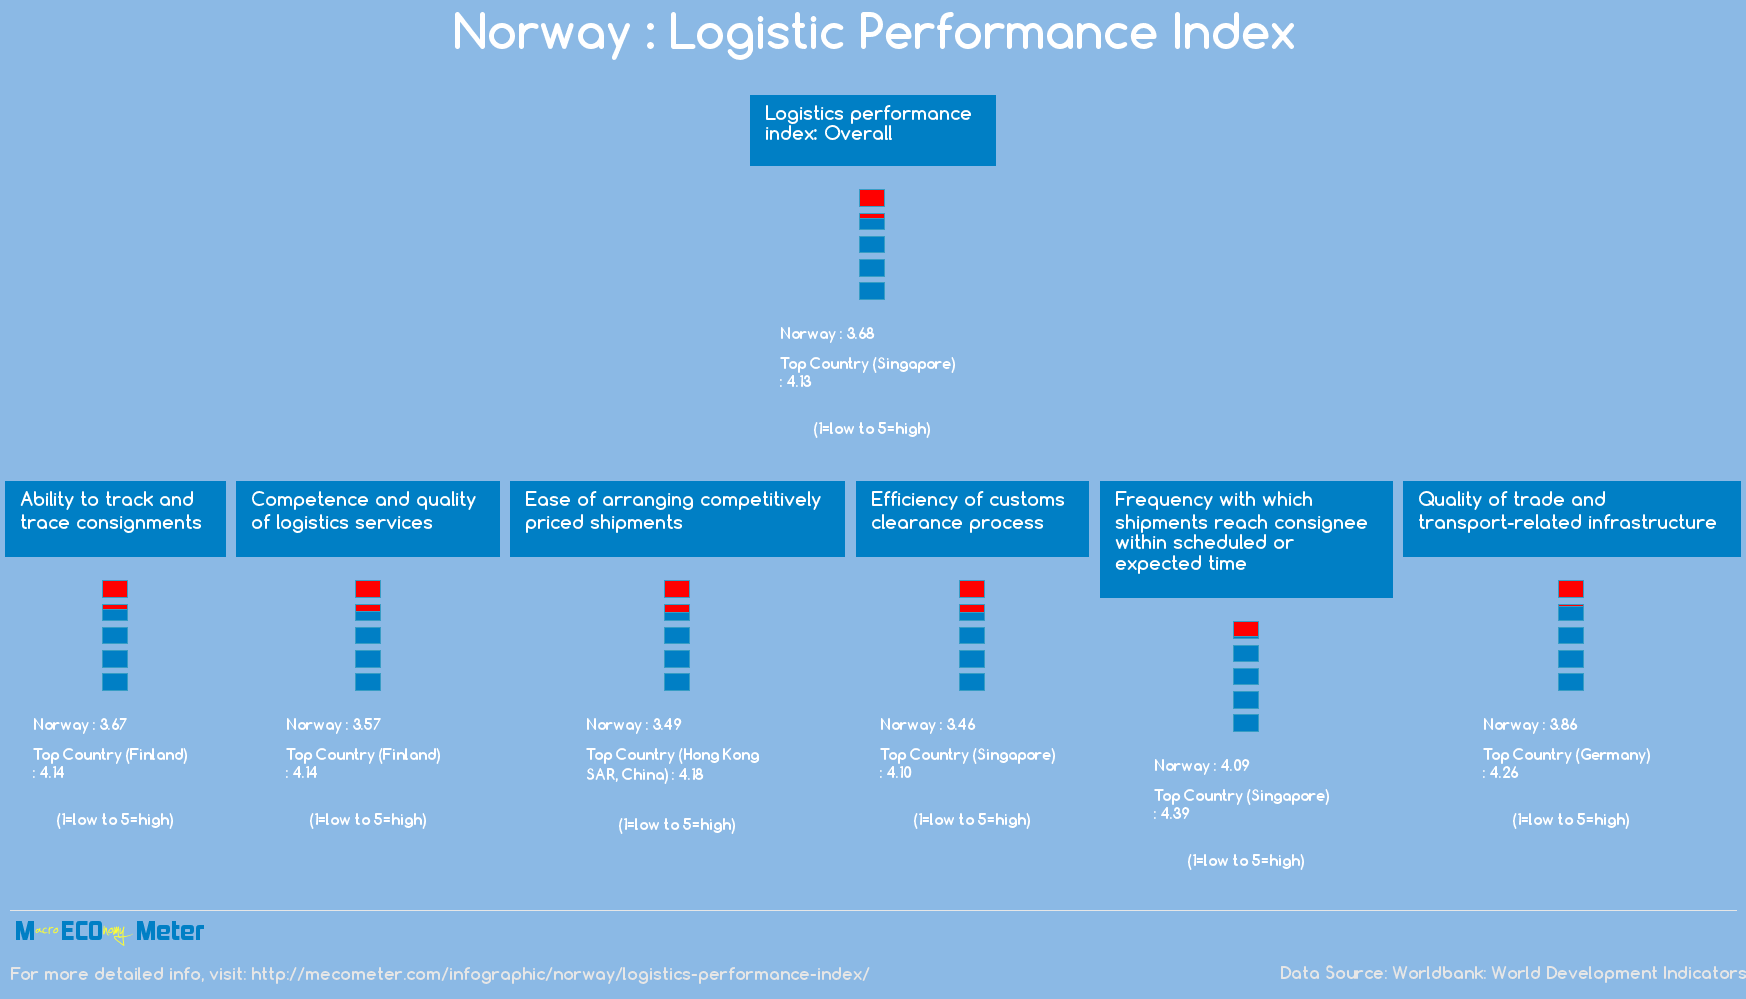 Norway : Logistic Performance Index